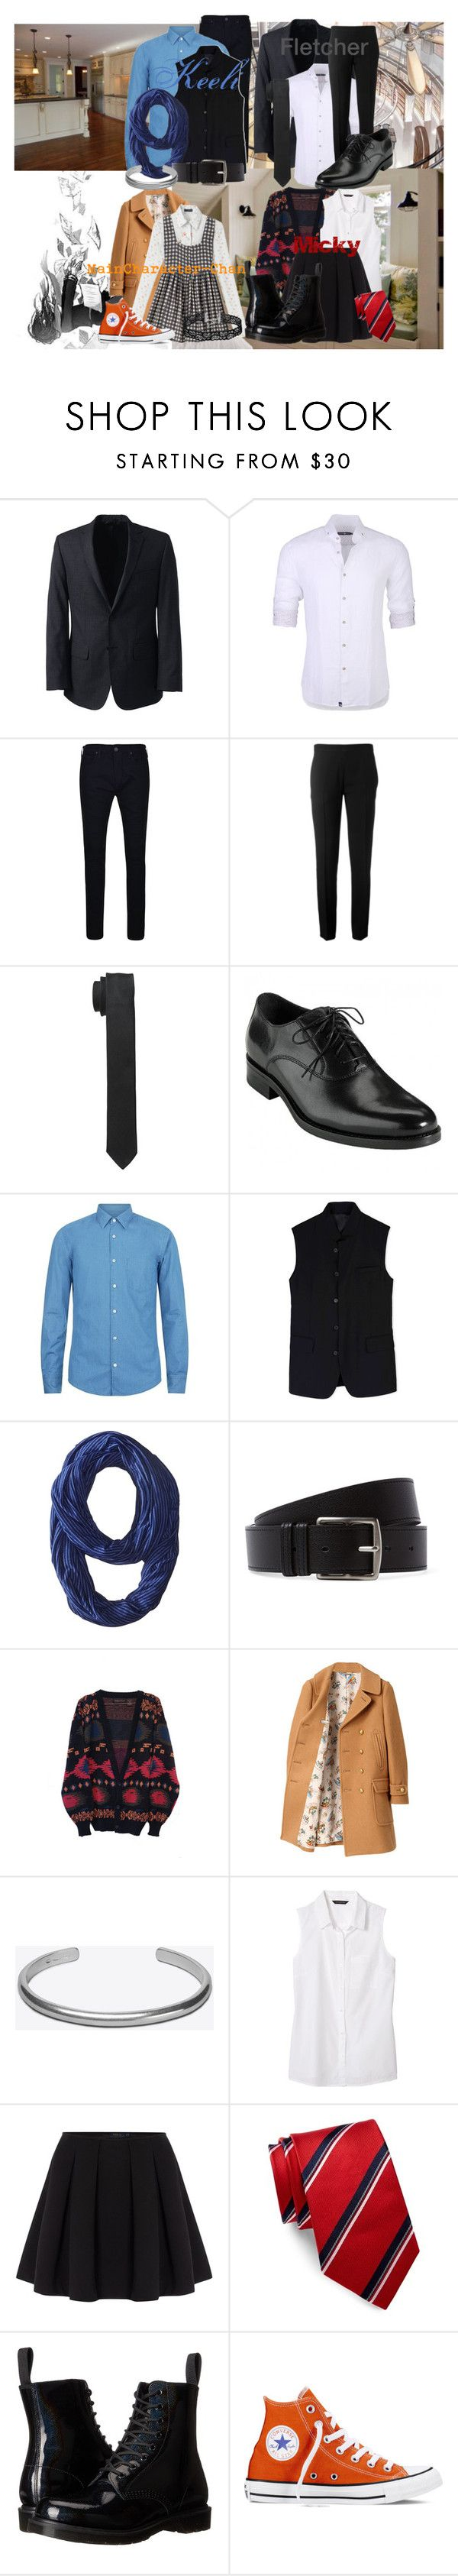 """""""Ticket To Time; Part 1"""" by bubbythenarwhal ❤ liked on Polyvore featuring Lands' End, Stone Rose, True Religion, Chloé, Dolce&Gabbana, BOSS Hugo Boss, D.GNAK by KANG.D, Nike Golf, Hermès and Beautiful People"""